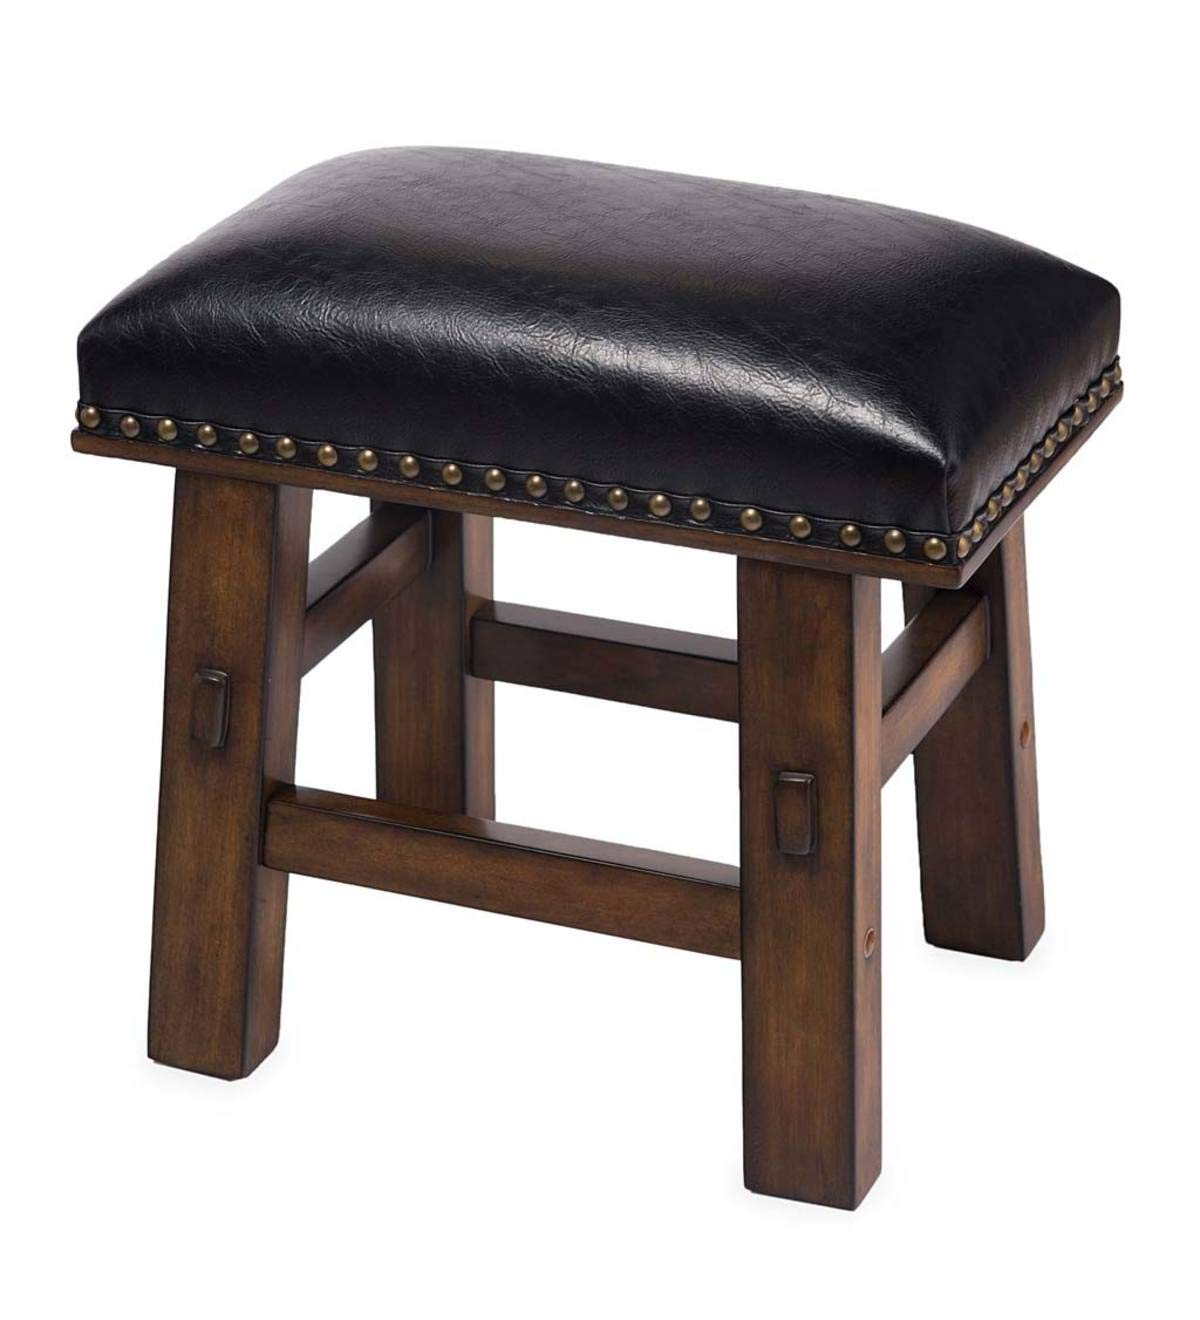 Plow & Hearth Canyon Black Leather Footstool - Black by Plow & Hearth